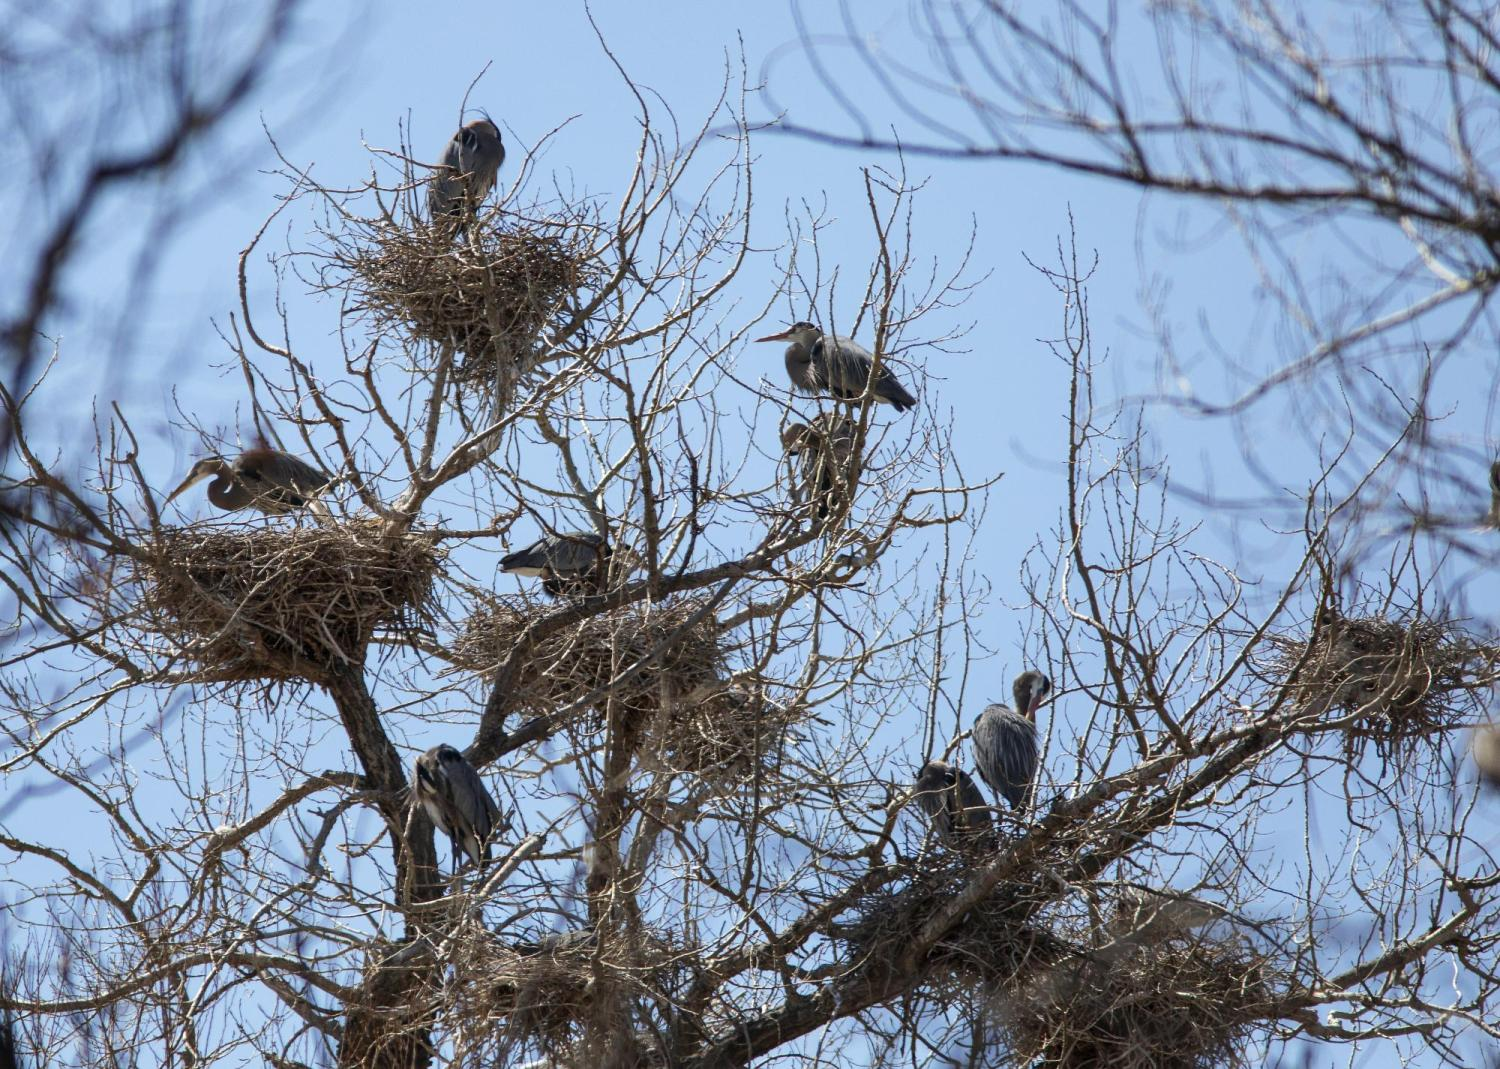 Living in a heronry involves many close neighbors. Photo by Jeff Mitton.